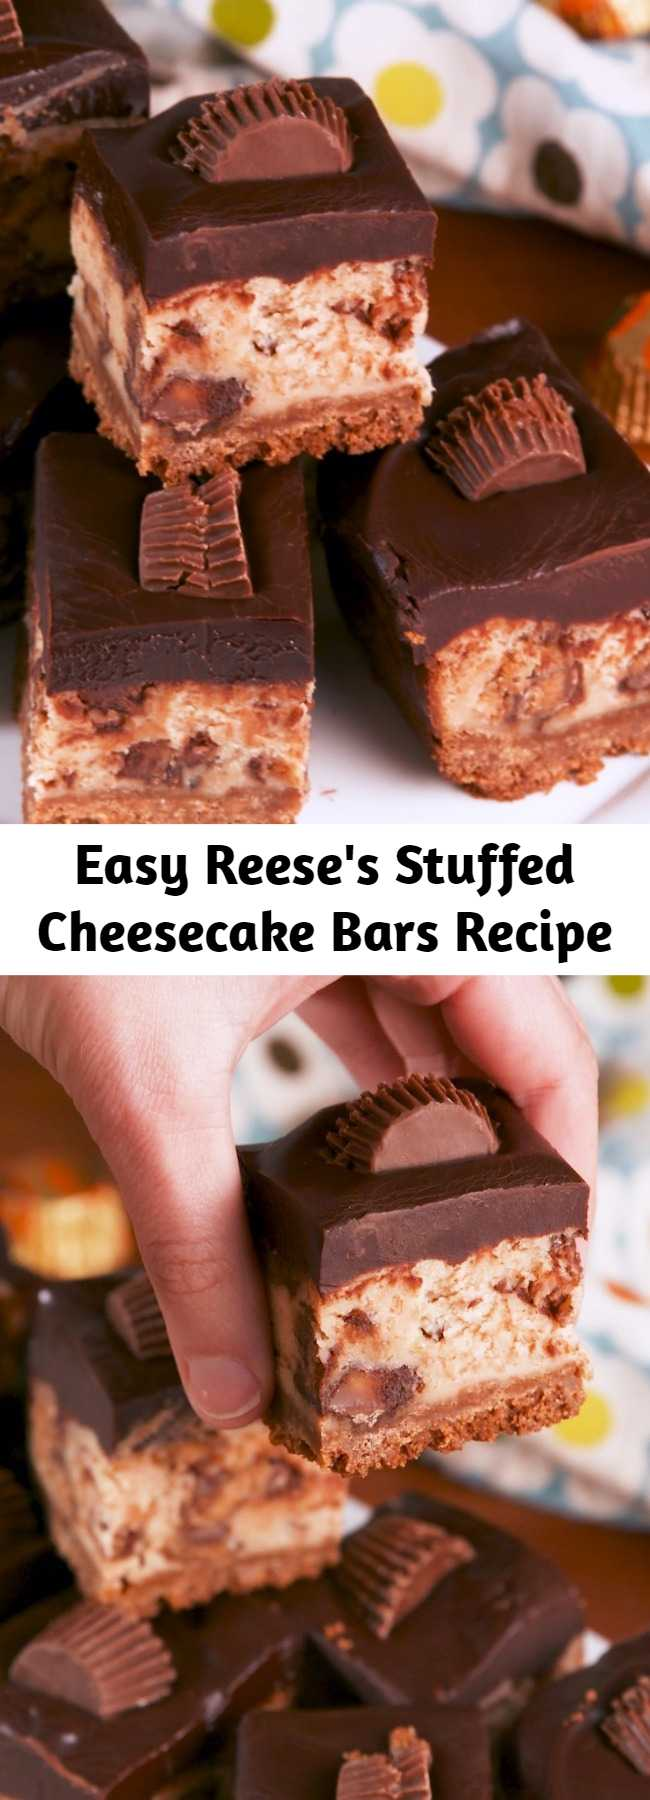 Easy Reese's Stuffed Cheesecake Bars Recipe - No such thing as too much peanut butter. #food #baking #easyrecipe #dessert #ideas